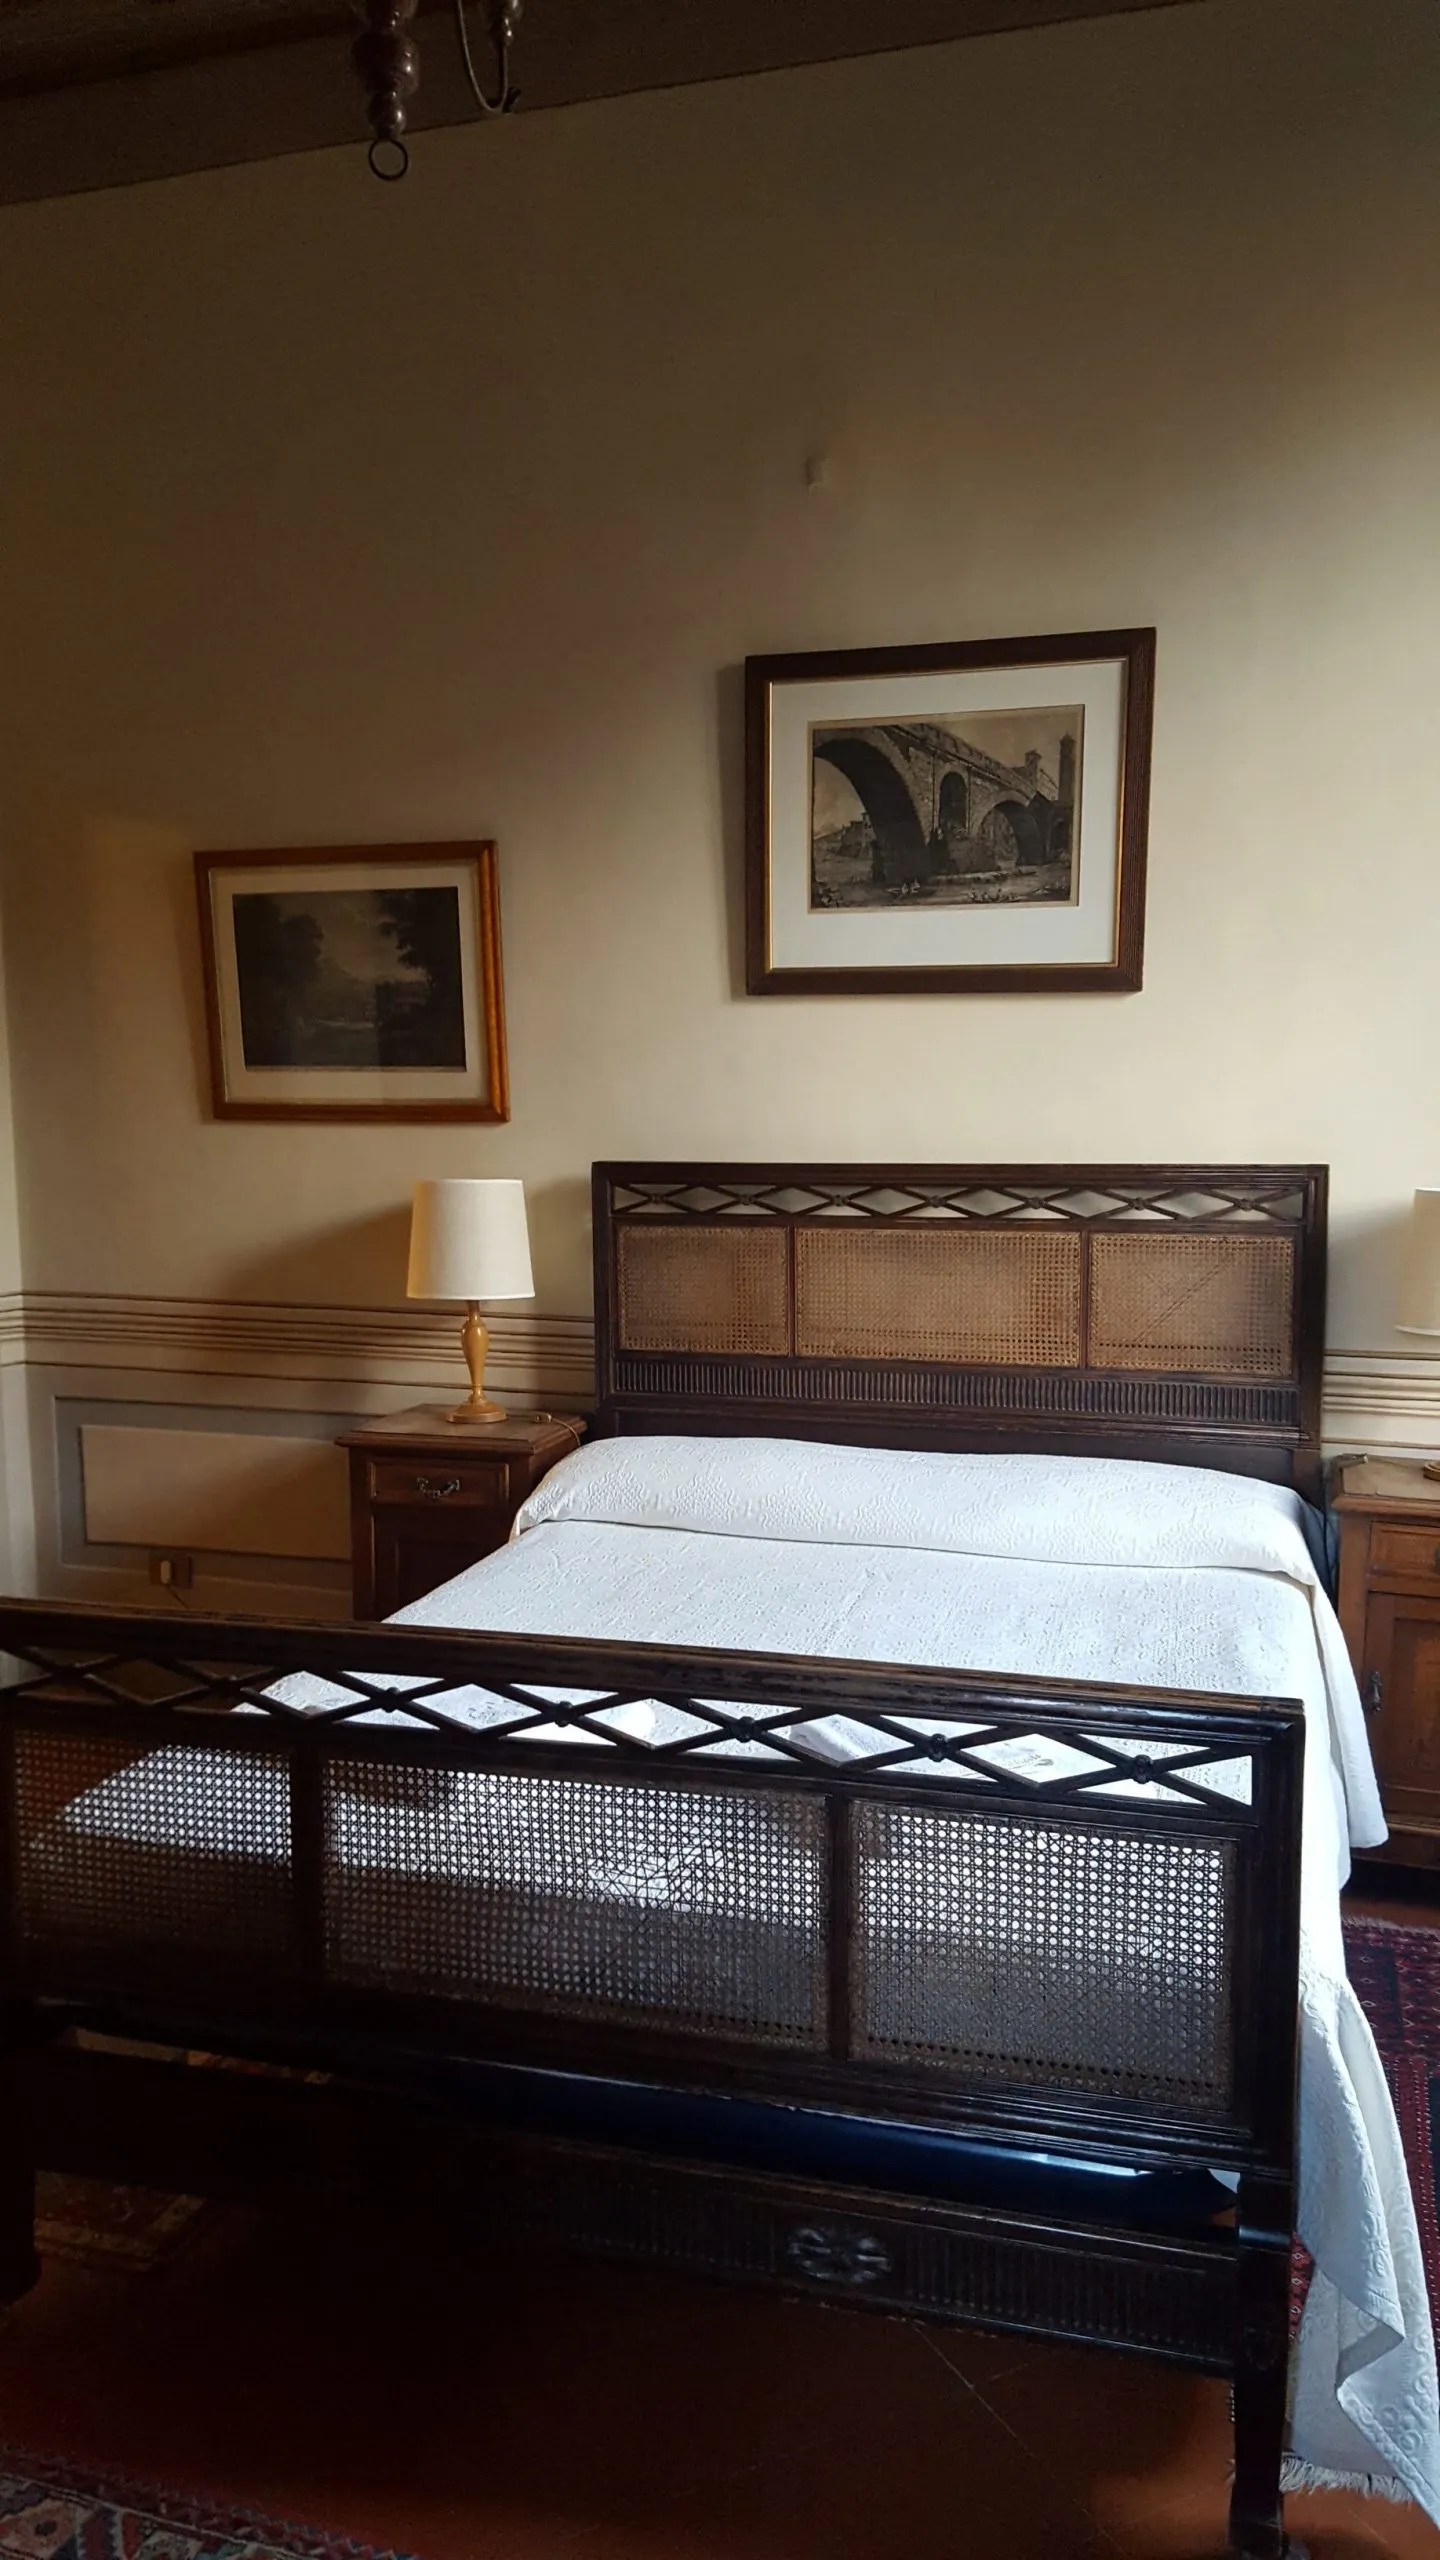 Keats Shelley house bedroom